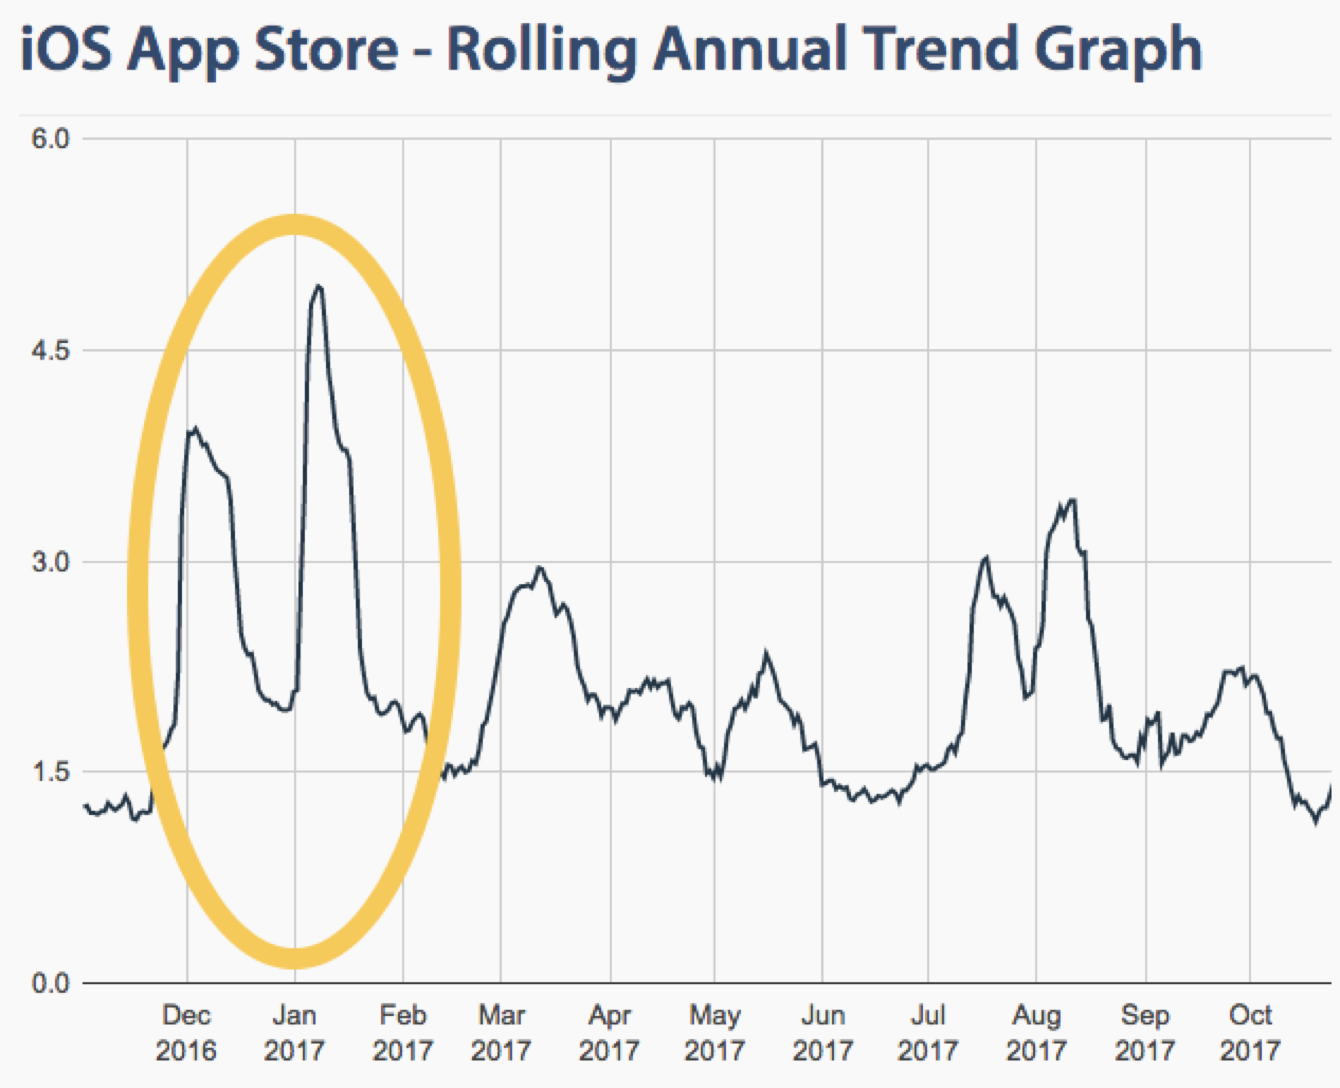 apple-app-store-app-approval-rolling-annual-trend-graph